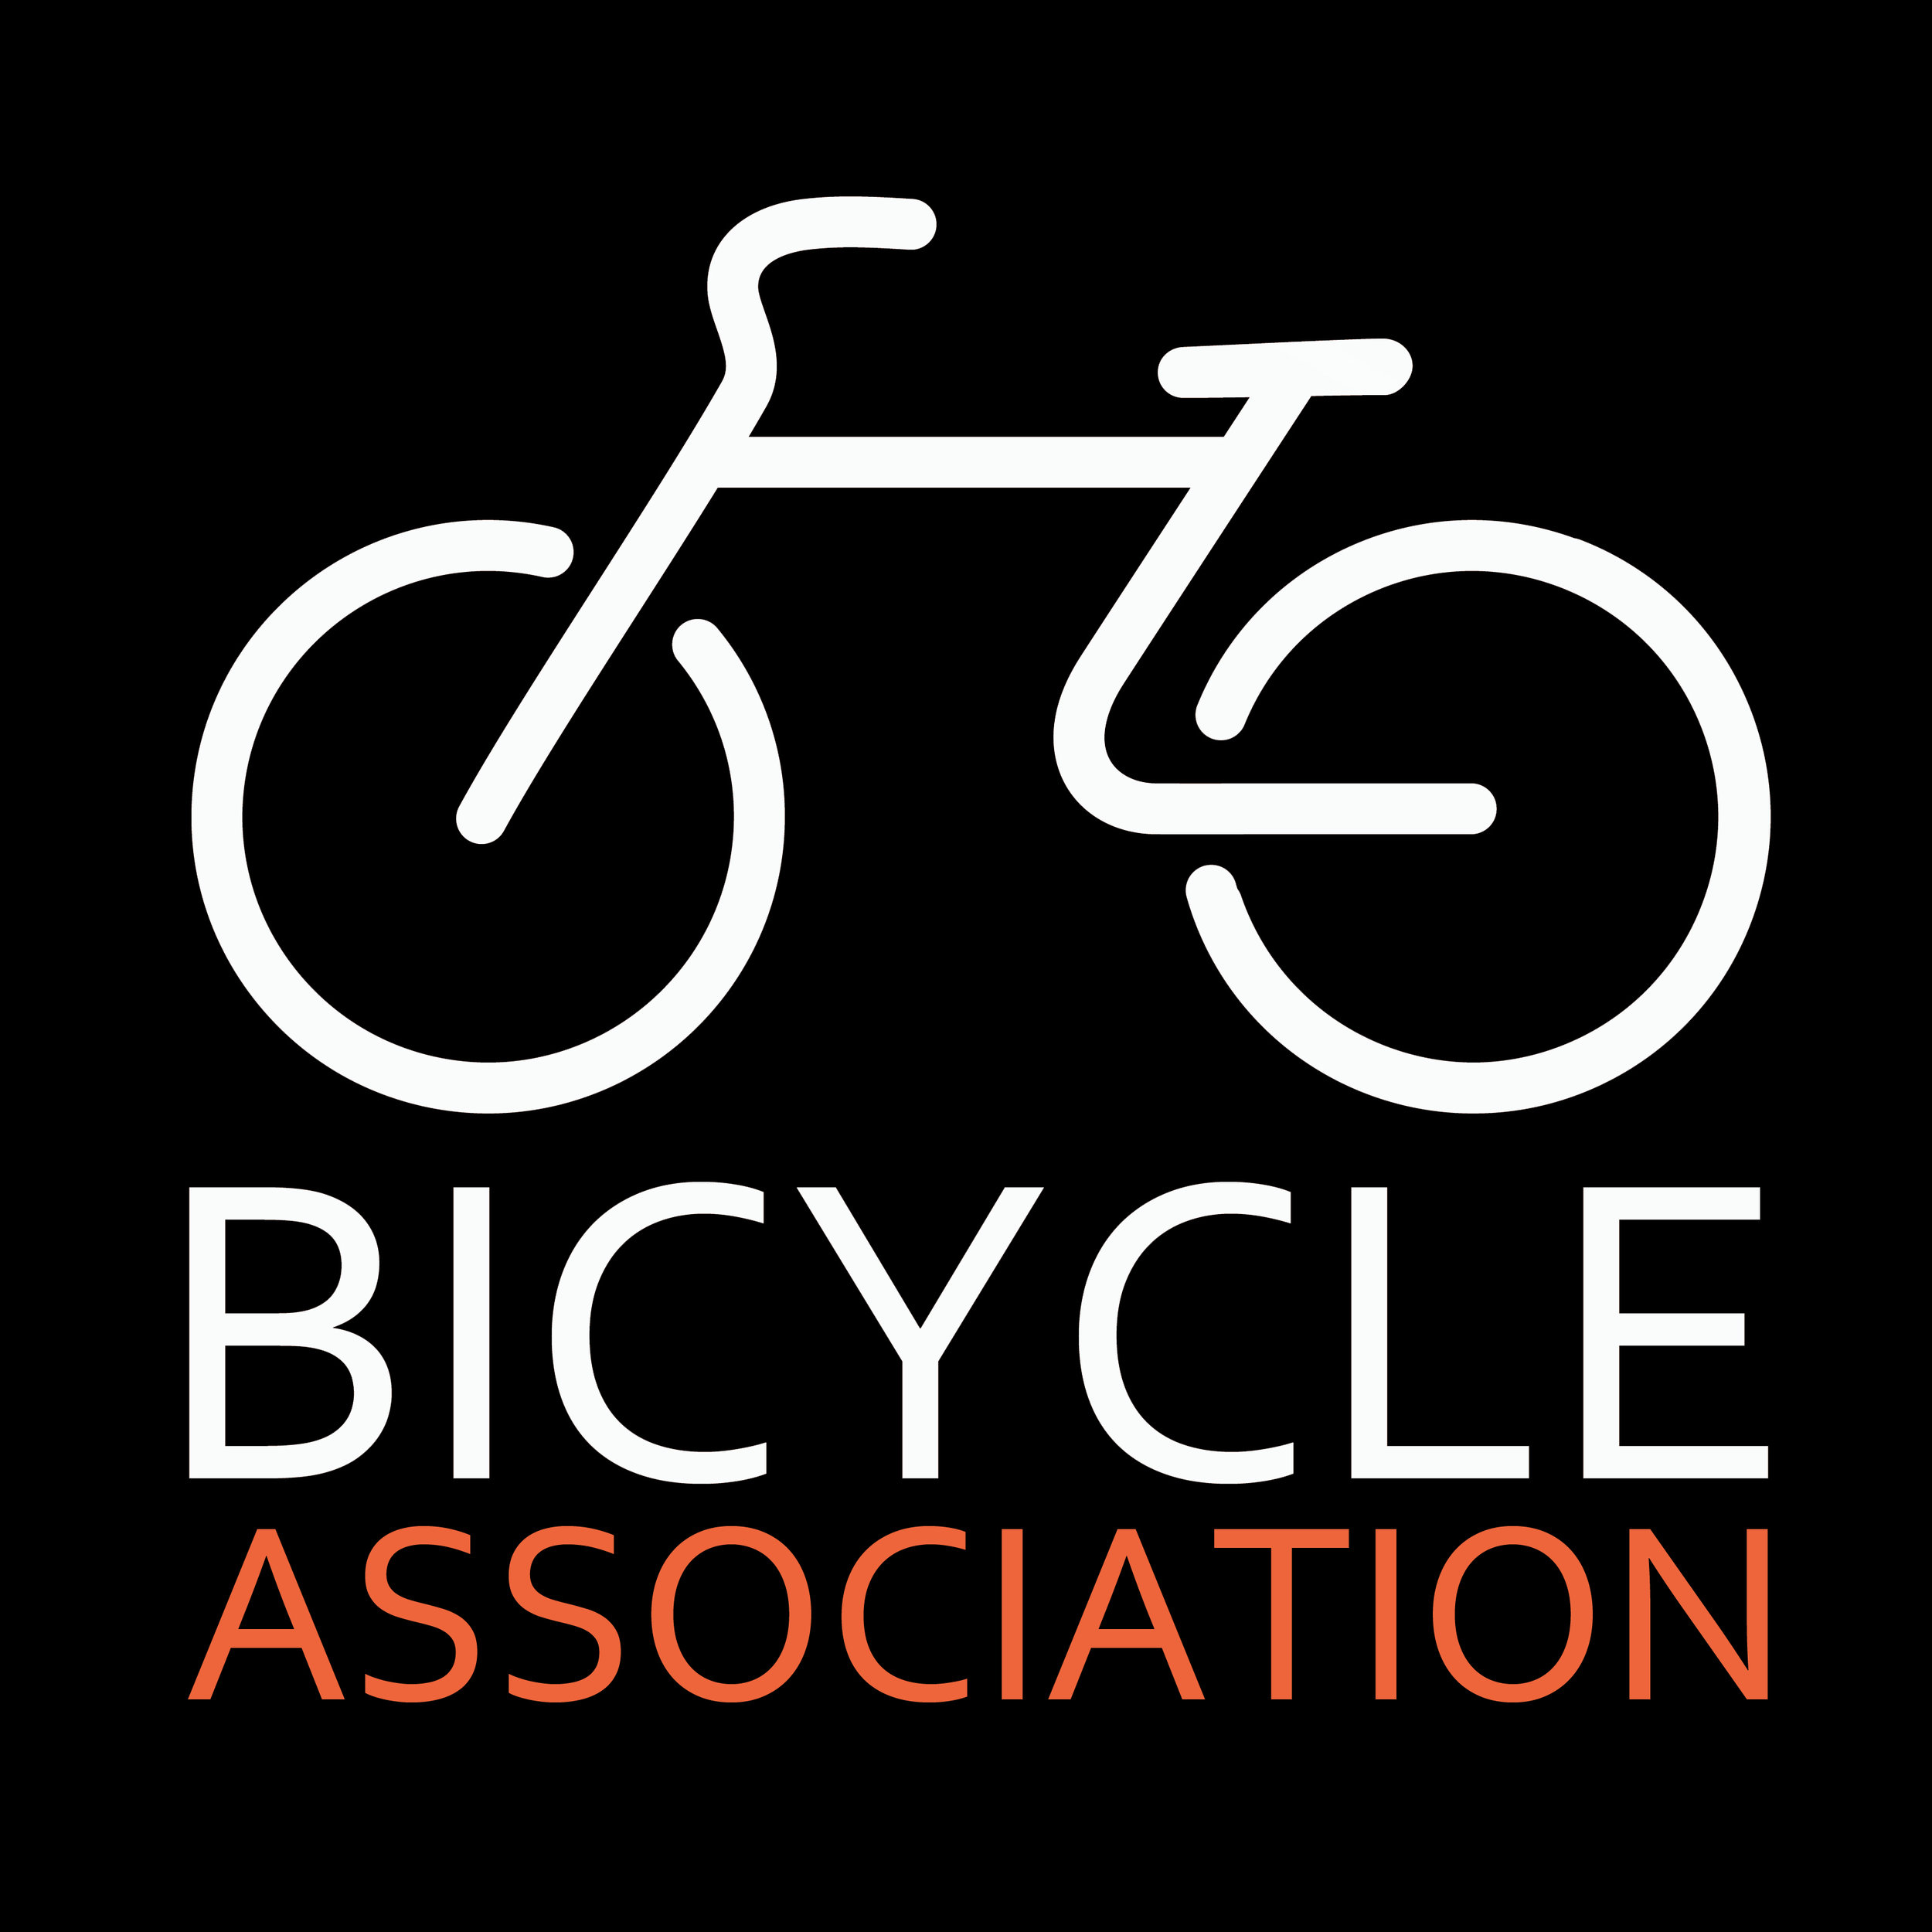 BicycleassociationNewLogo-1.jpg